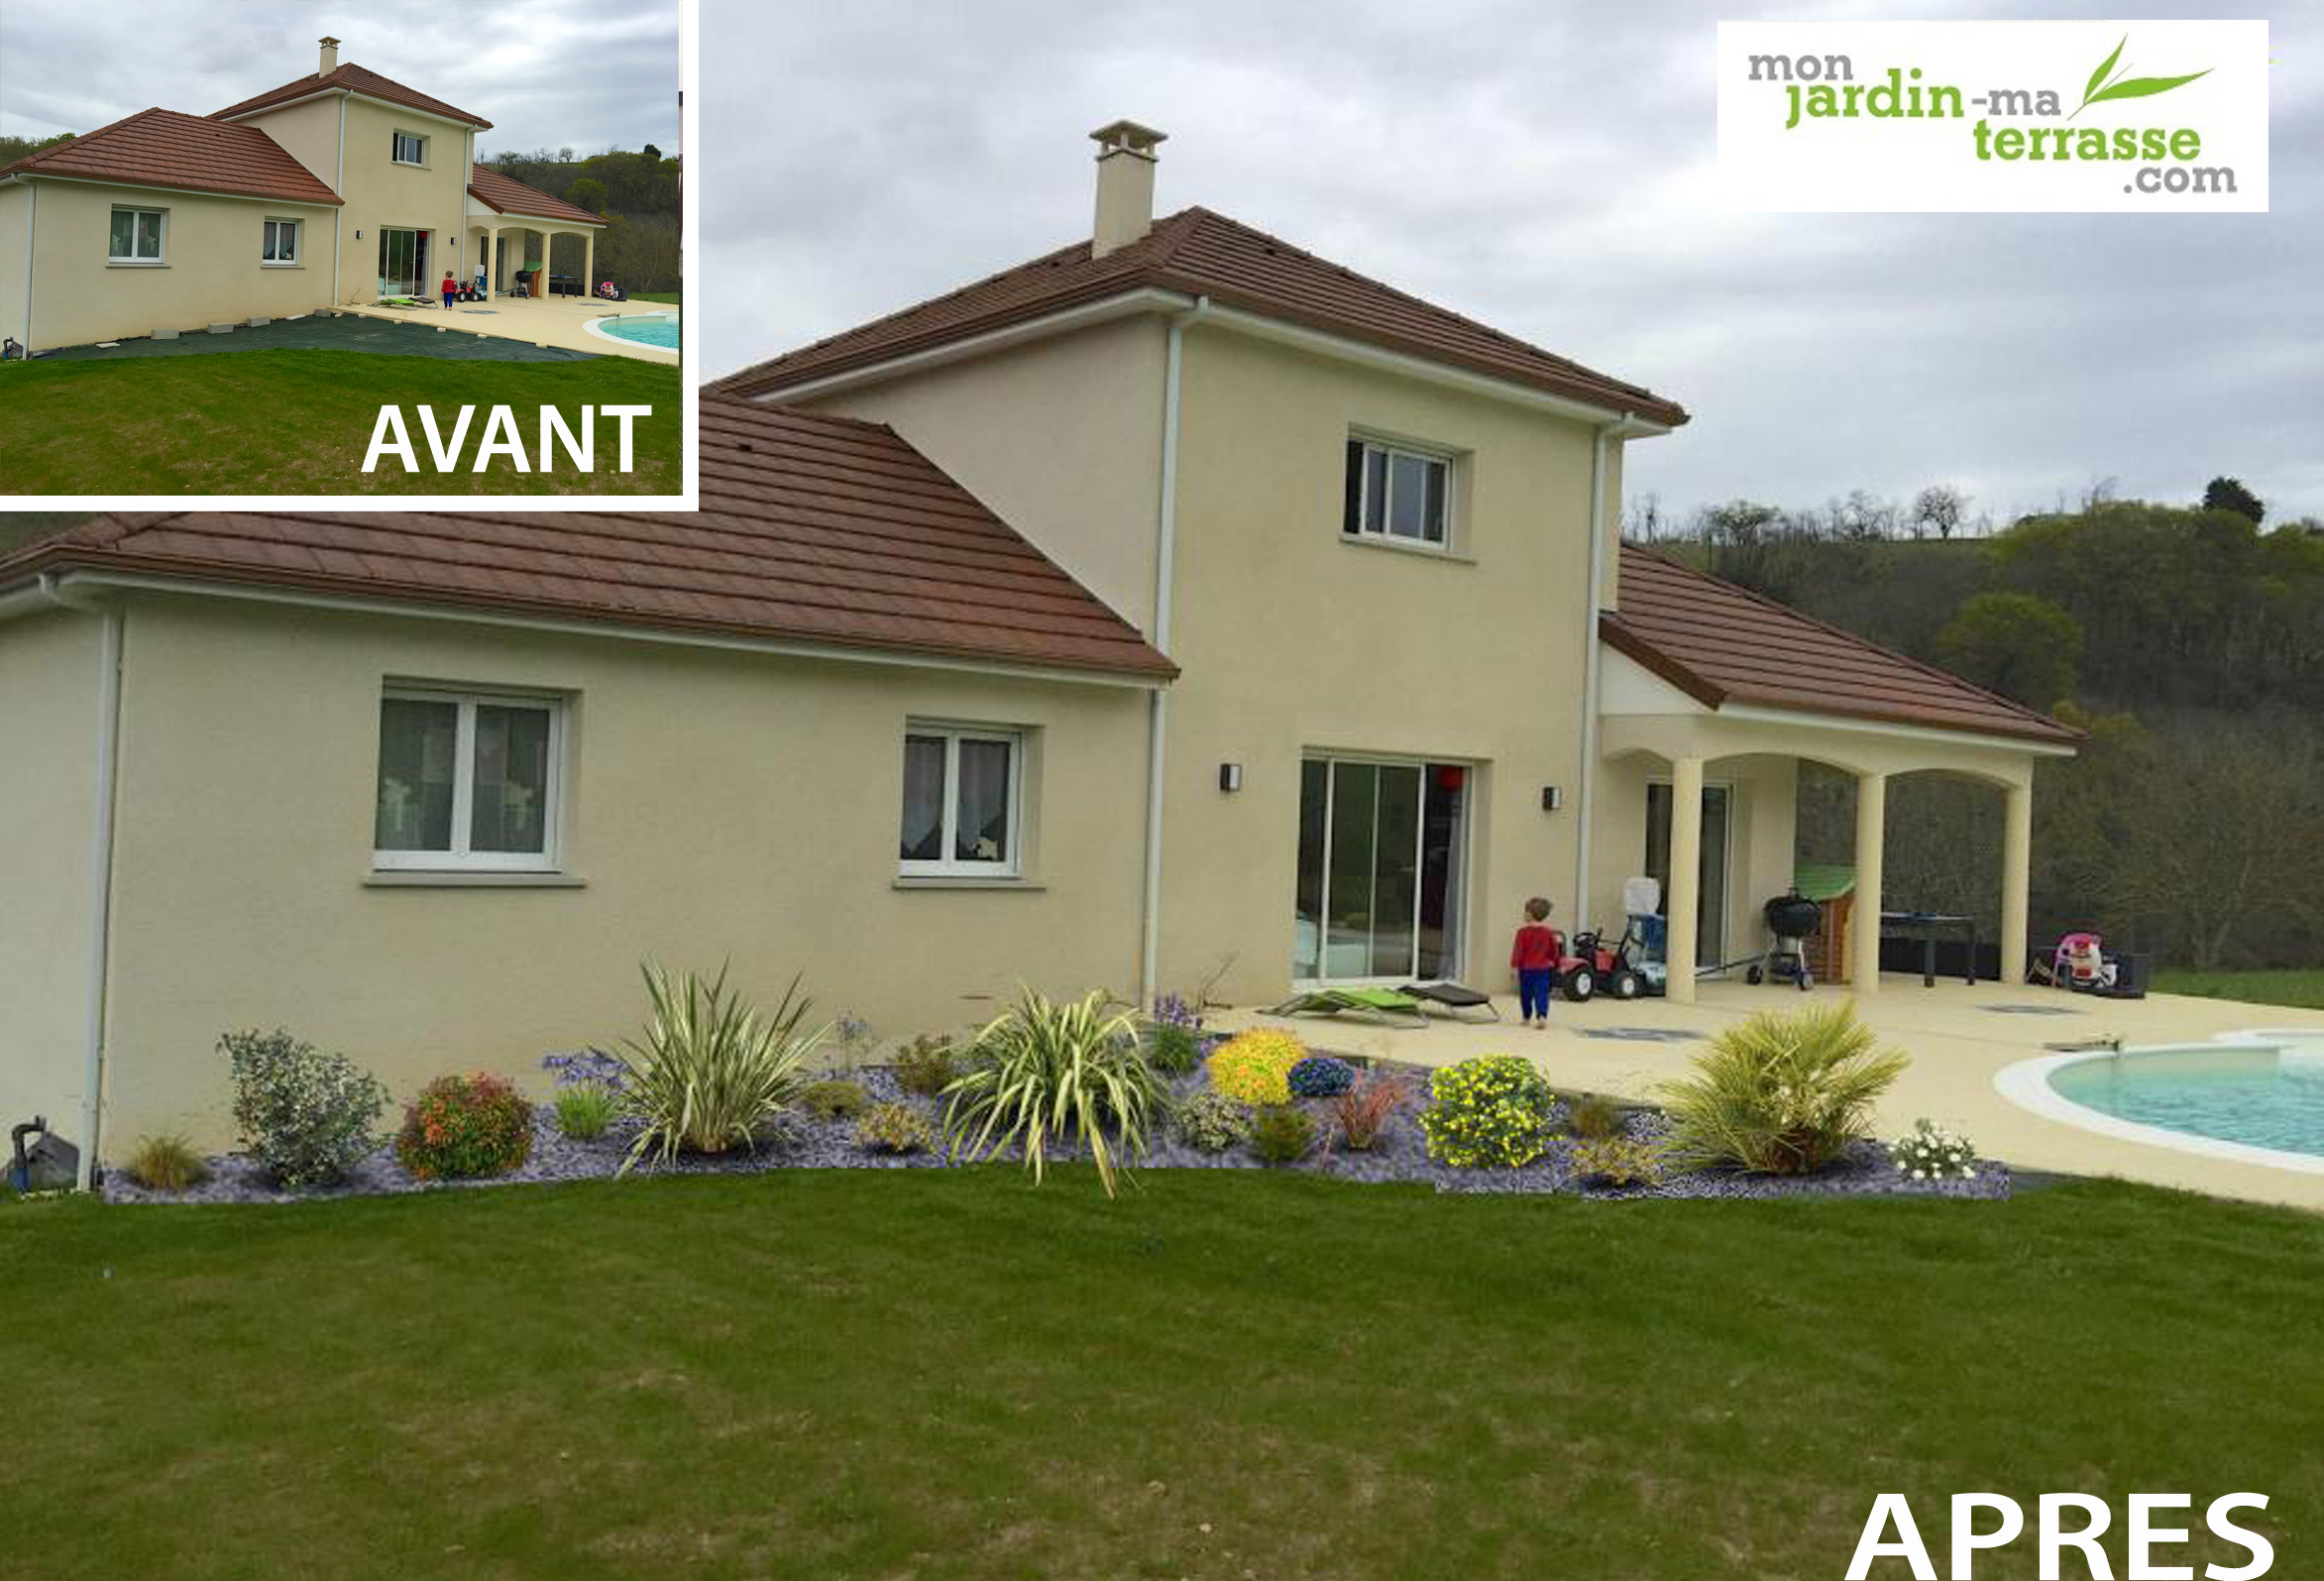 Am nagement ext rieur devant une maison monjardin for Amenagement jardin exterieur